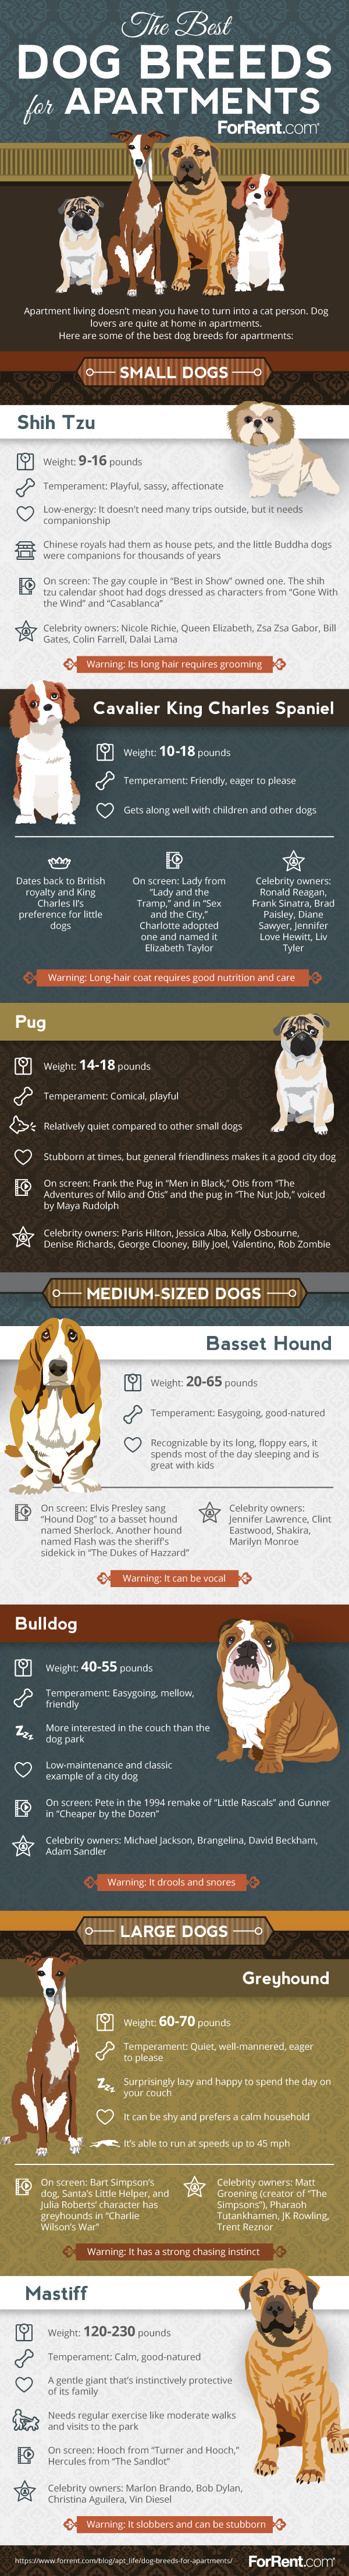 Apartment Living Choosing The Right Dog Breed With Images Apartment Dogs Apartment Dogs Breeds Best Dog Breeds